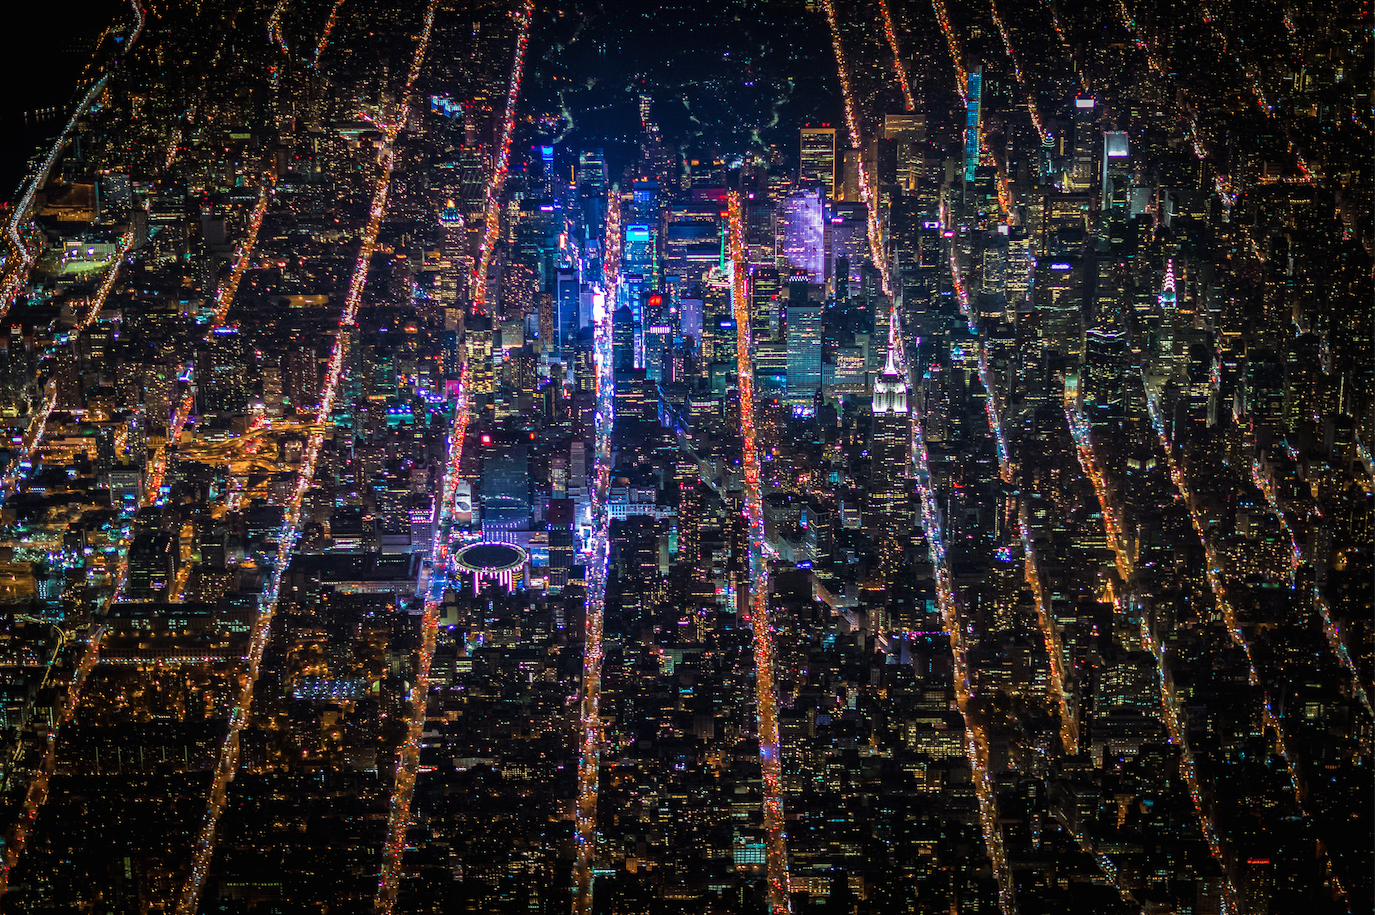 Vincent Laforet's Images of New York From Above Will Take Your Breath Away